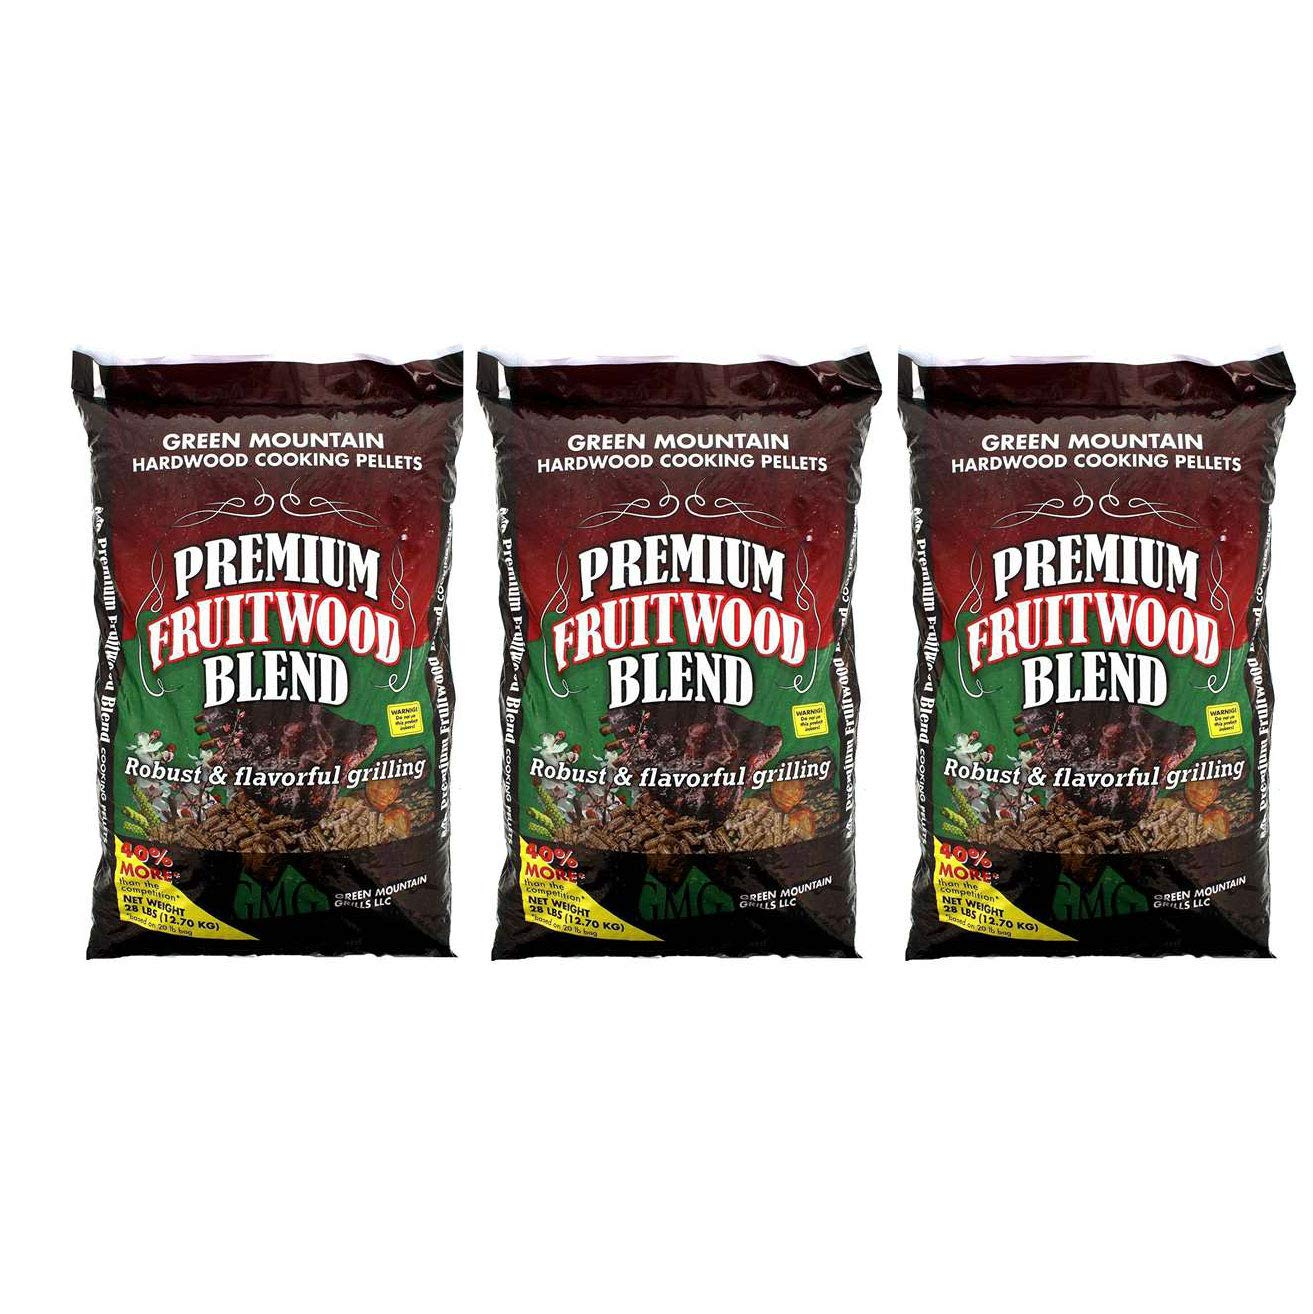 Green Mountain Grills Premium Fruitwood Pure Hardwood Grilling Cooking Pellets (3 Pack)